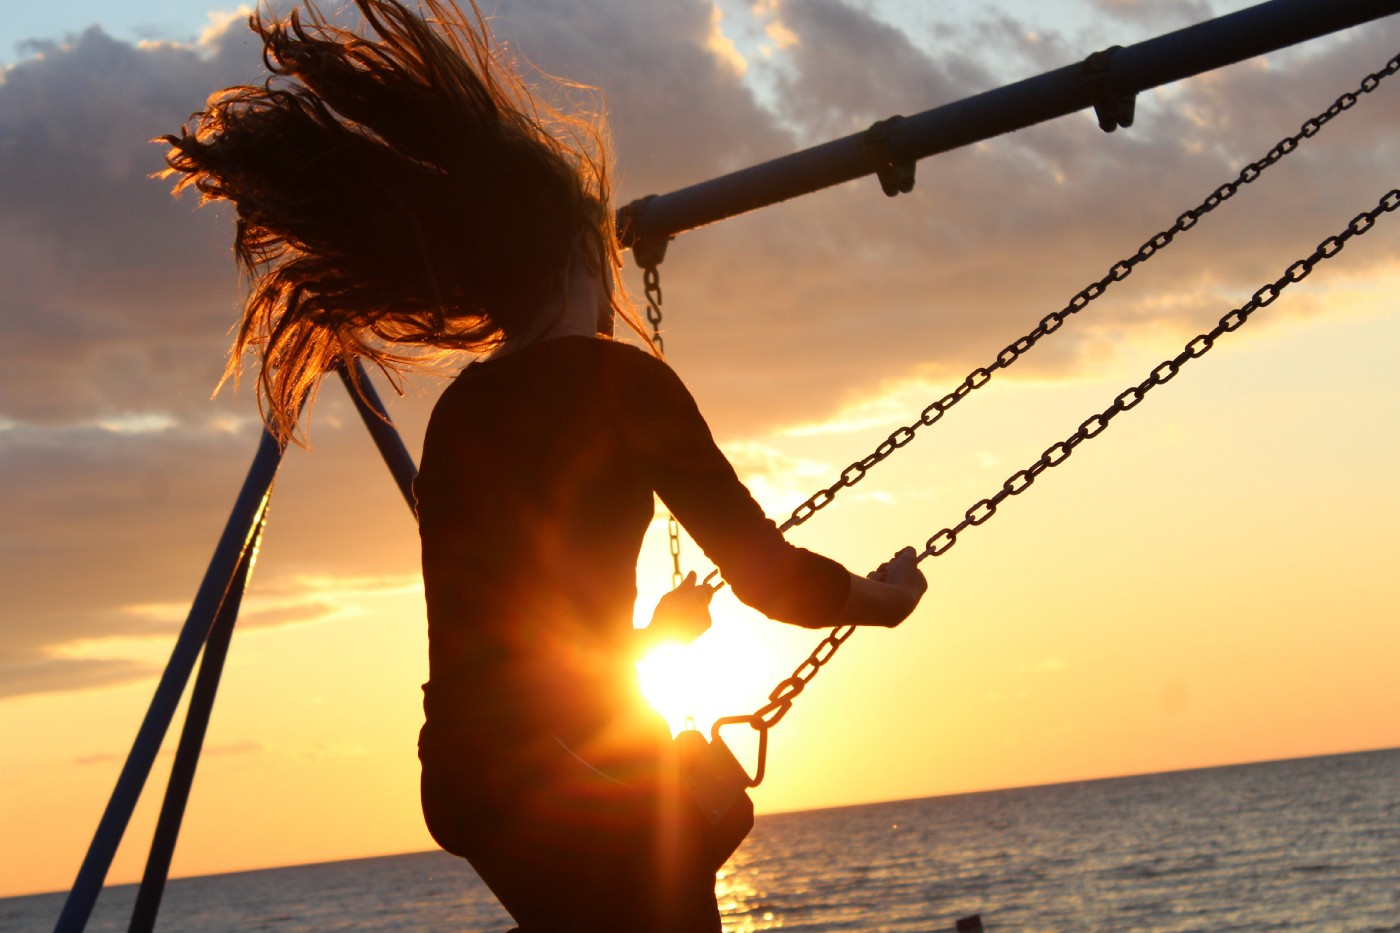 Woman in a swing, hair flying behind her, probably on a beach because she seems to be swinging over the sun setting on the ocean